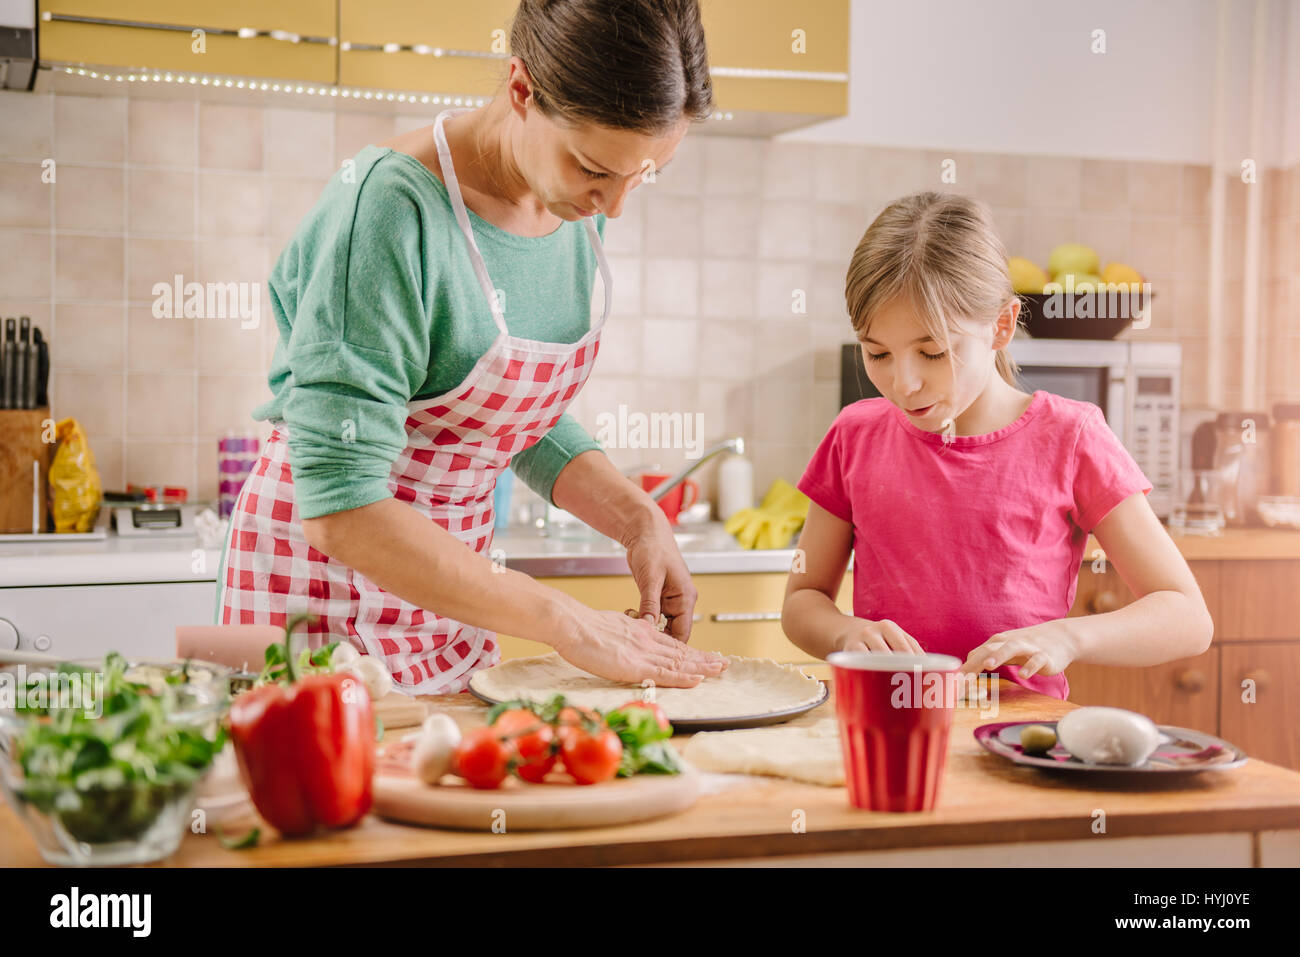 Mother and daughter preparing pizza in the kitchen - Stock Image